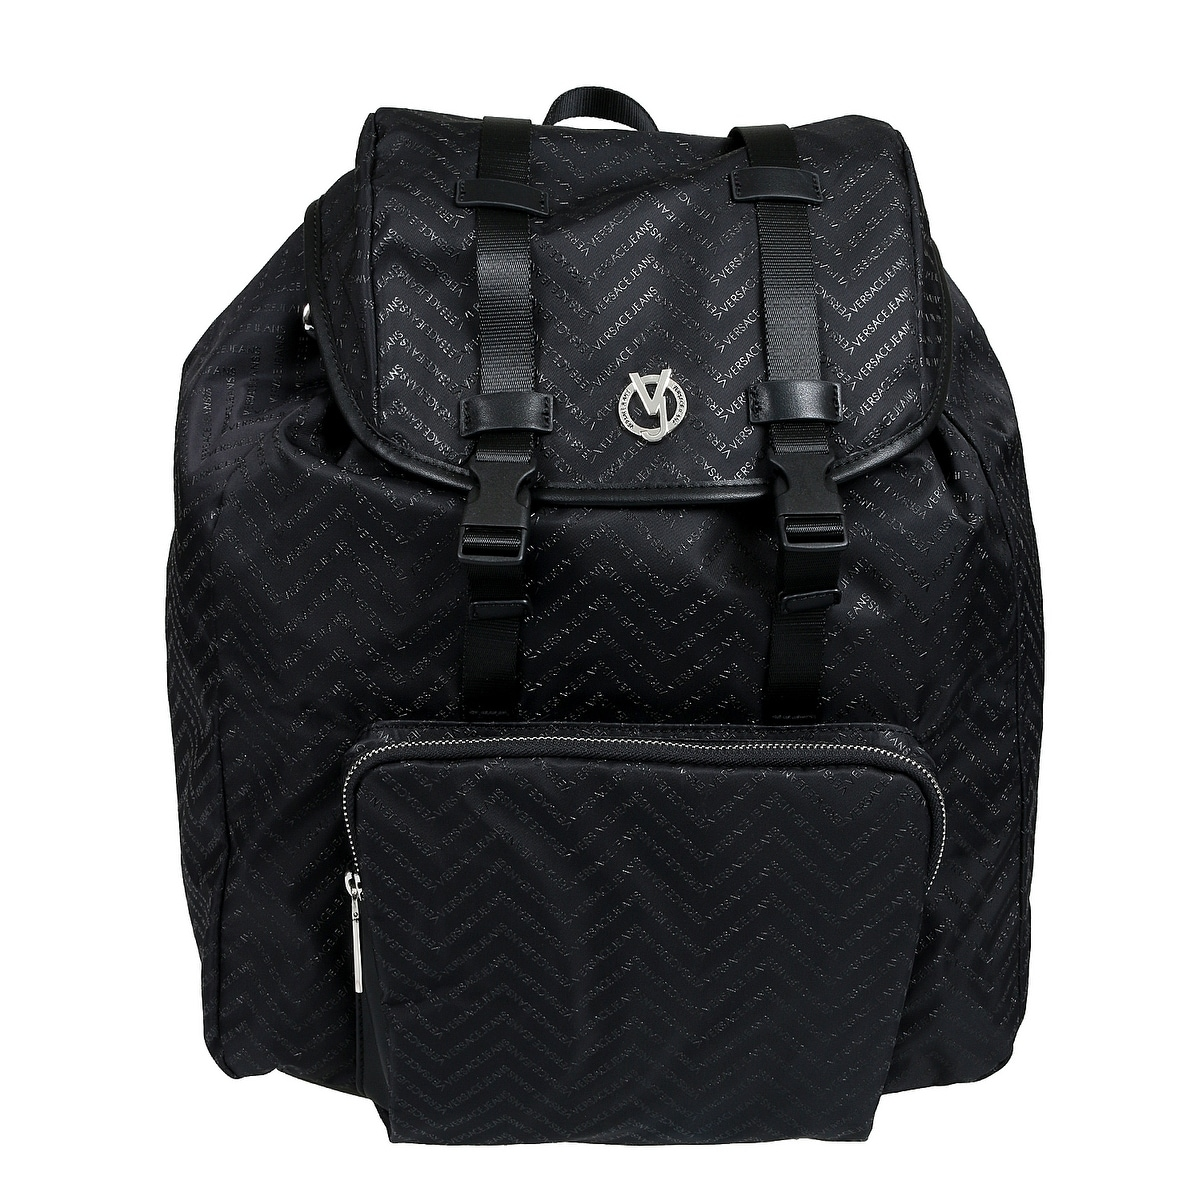 acb0f2b75c Shop Versace EE1YTBB30 E899 Black Backpack - 14-14-8.5 - Free Shipping  Today - Overstock - 26970268